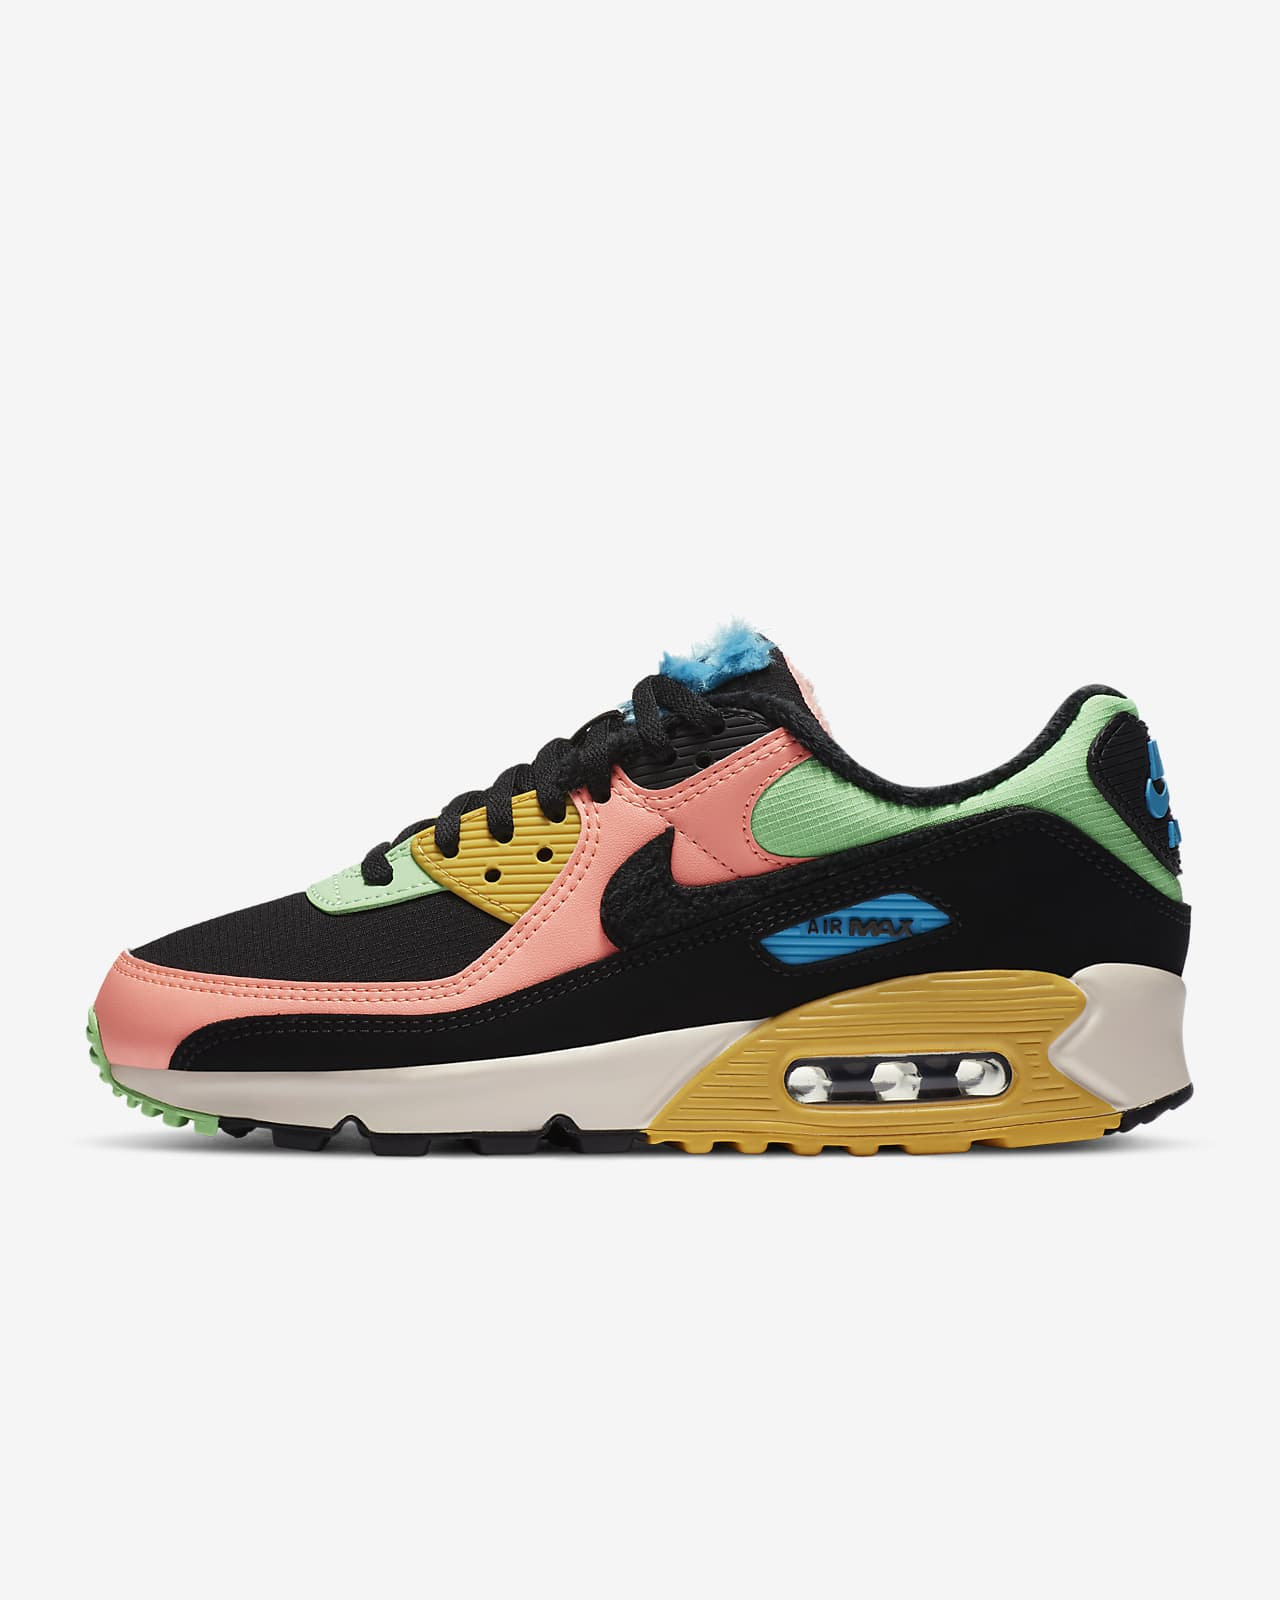 Nike Air Max 90 Premium Women's Shoe